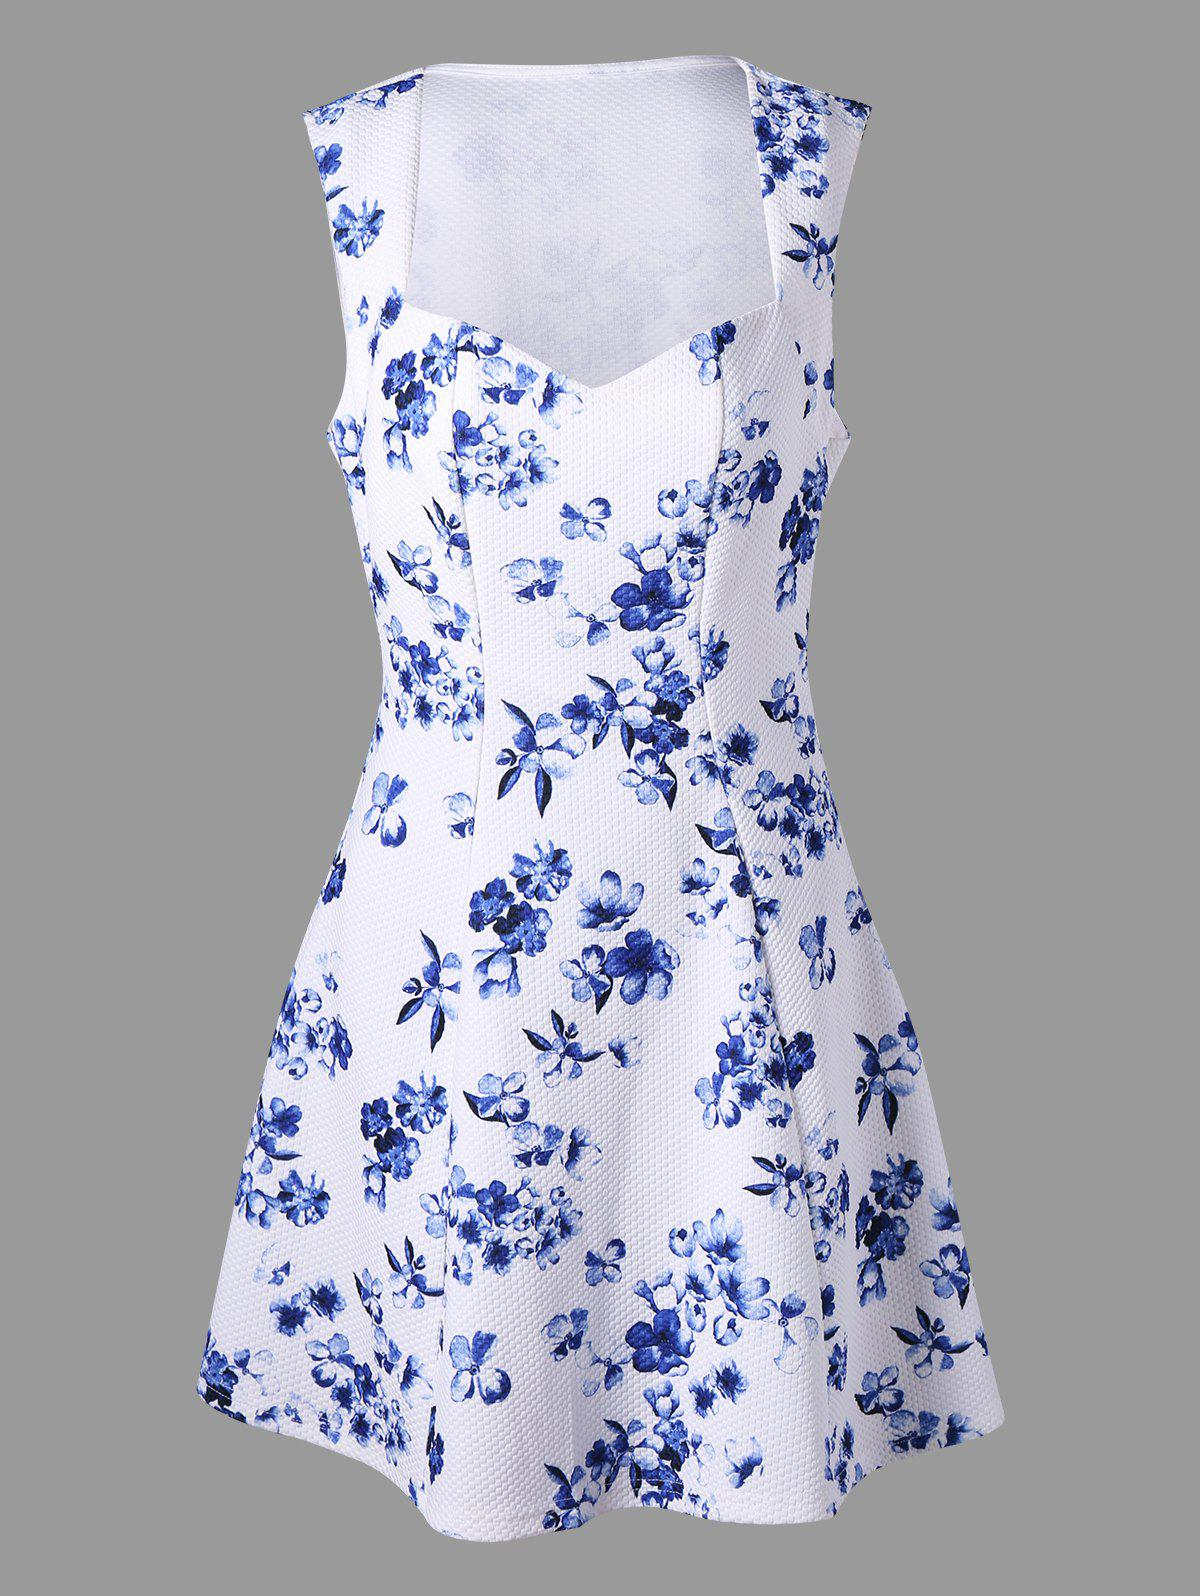 Floral Print Sleeveless Skater Dress - WHITE L